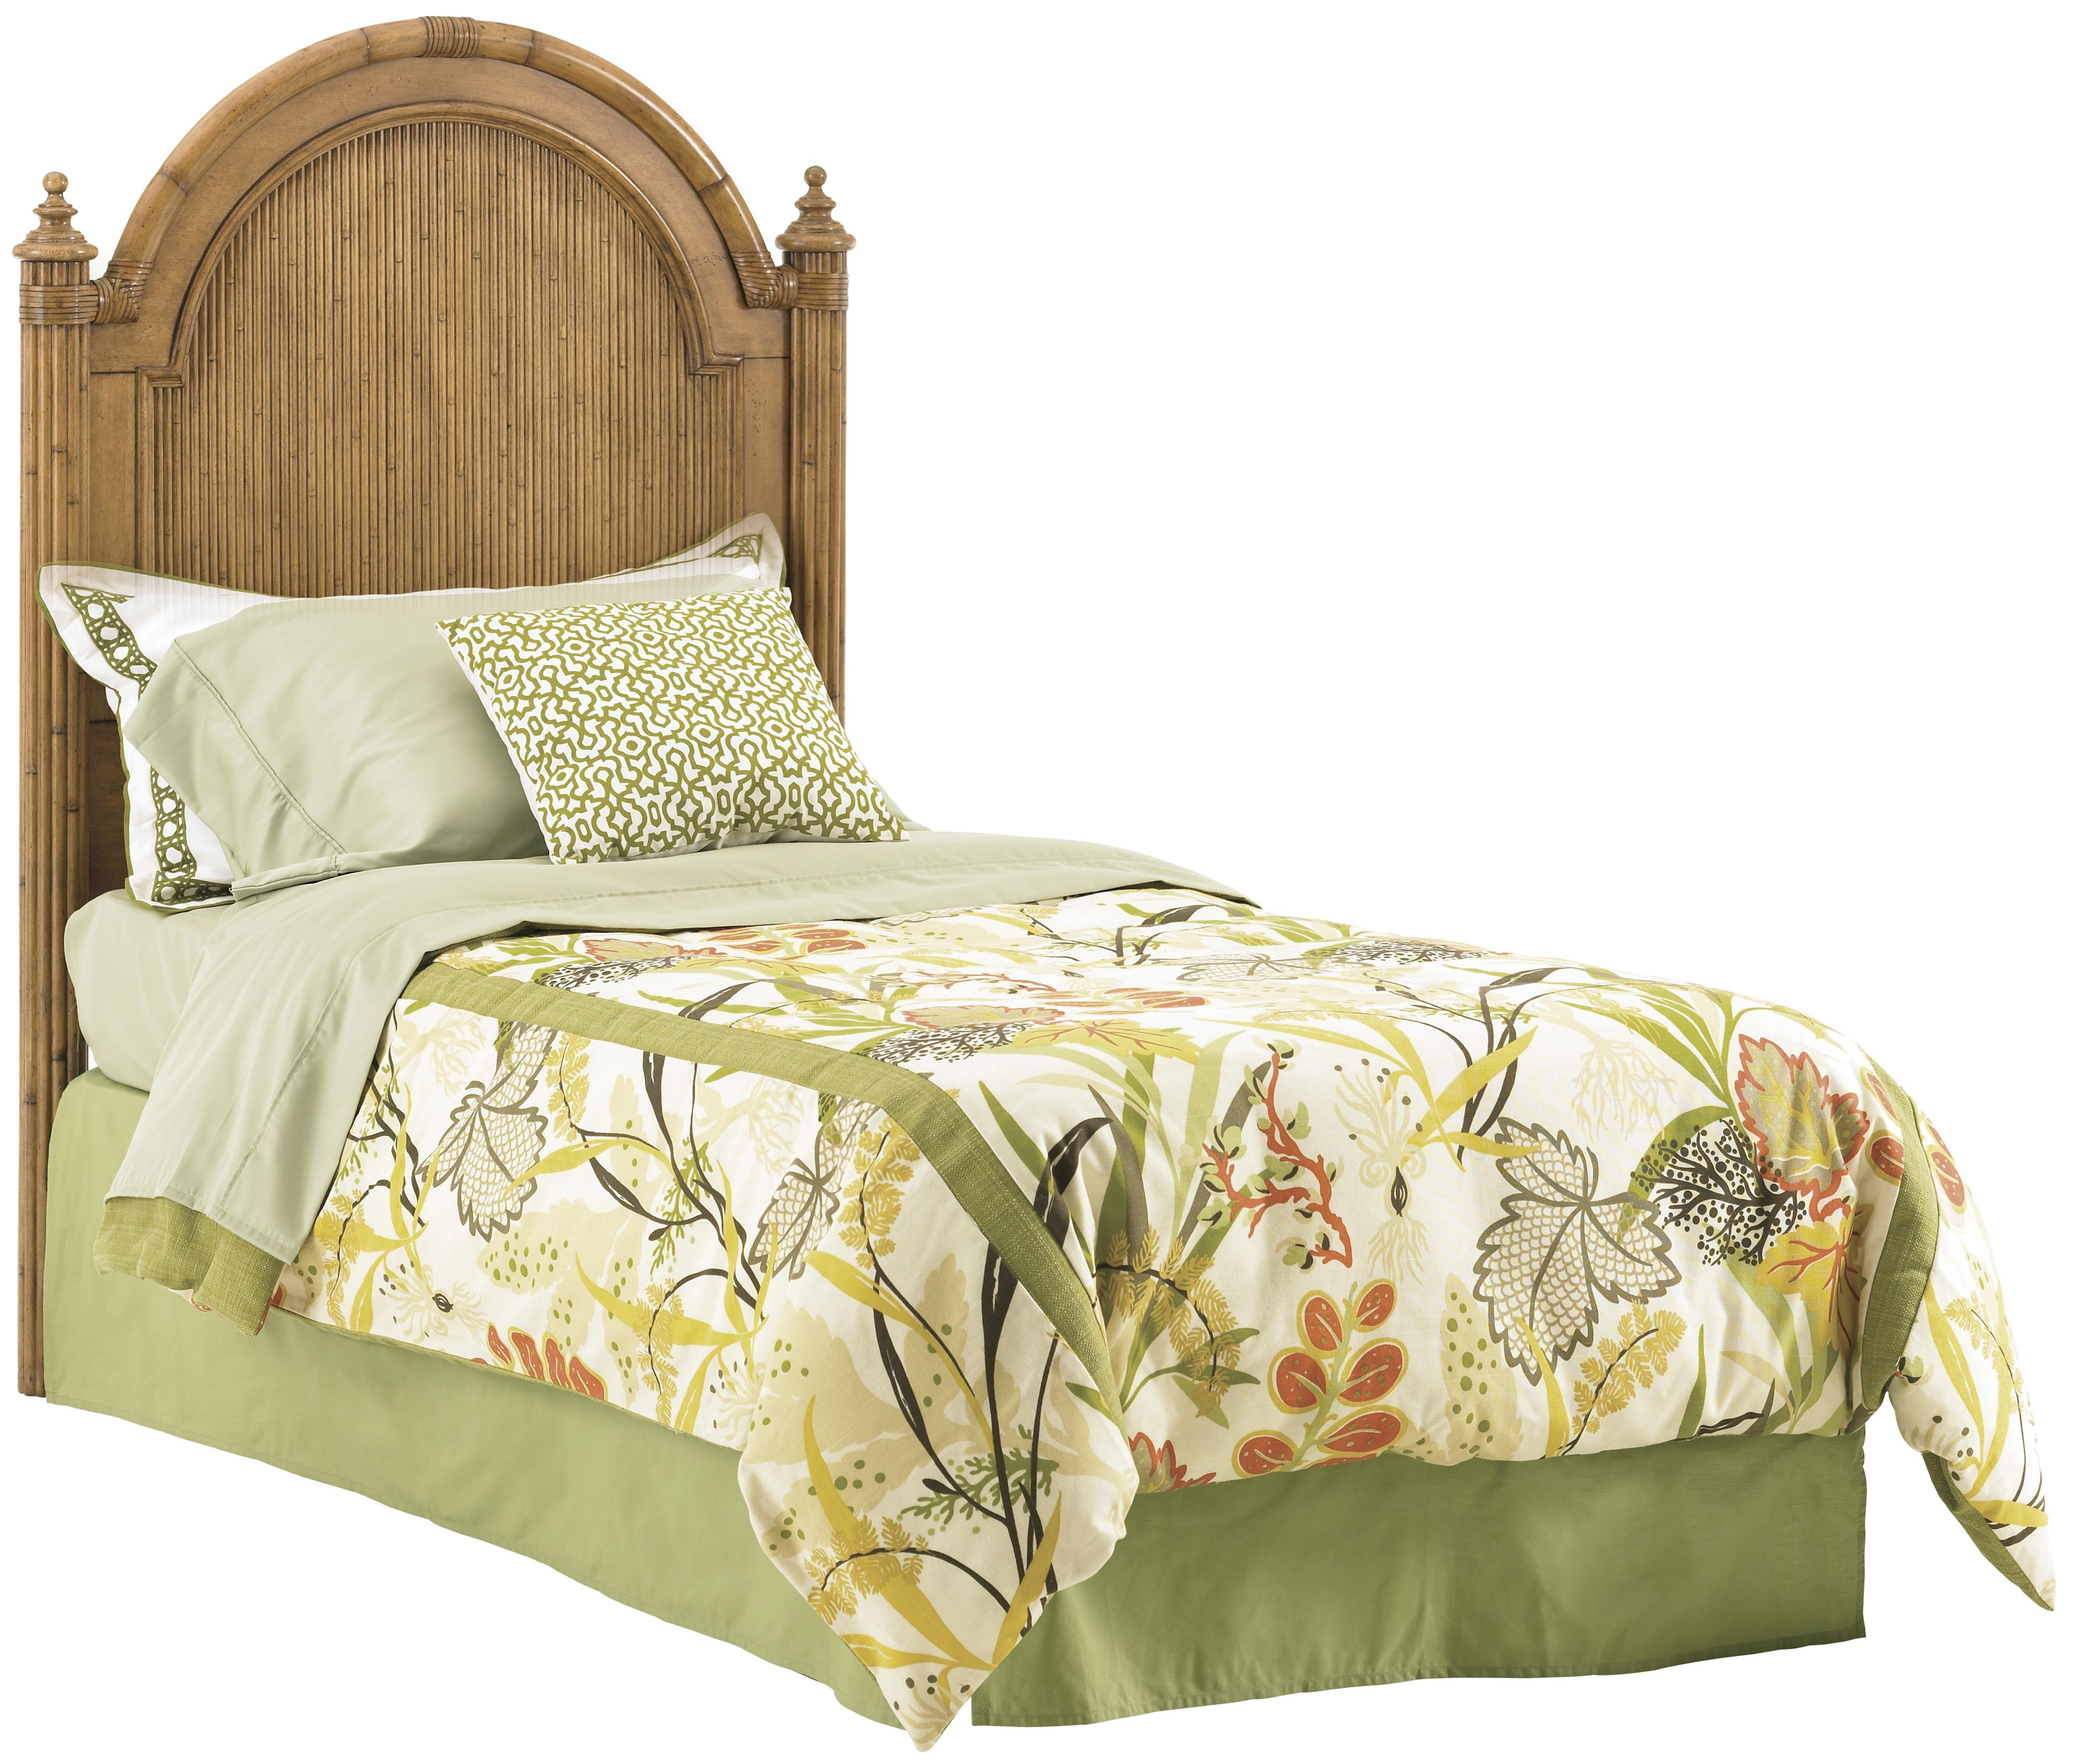 Tommy Bahama Home Beach House 540 133hb Queen Size Belle Isle Headboard With Bamboo Accents